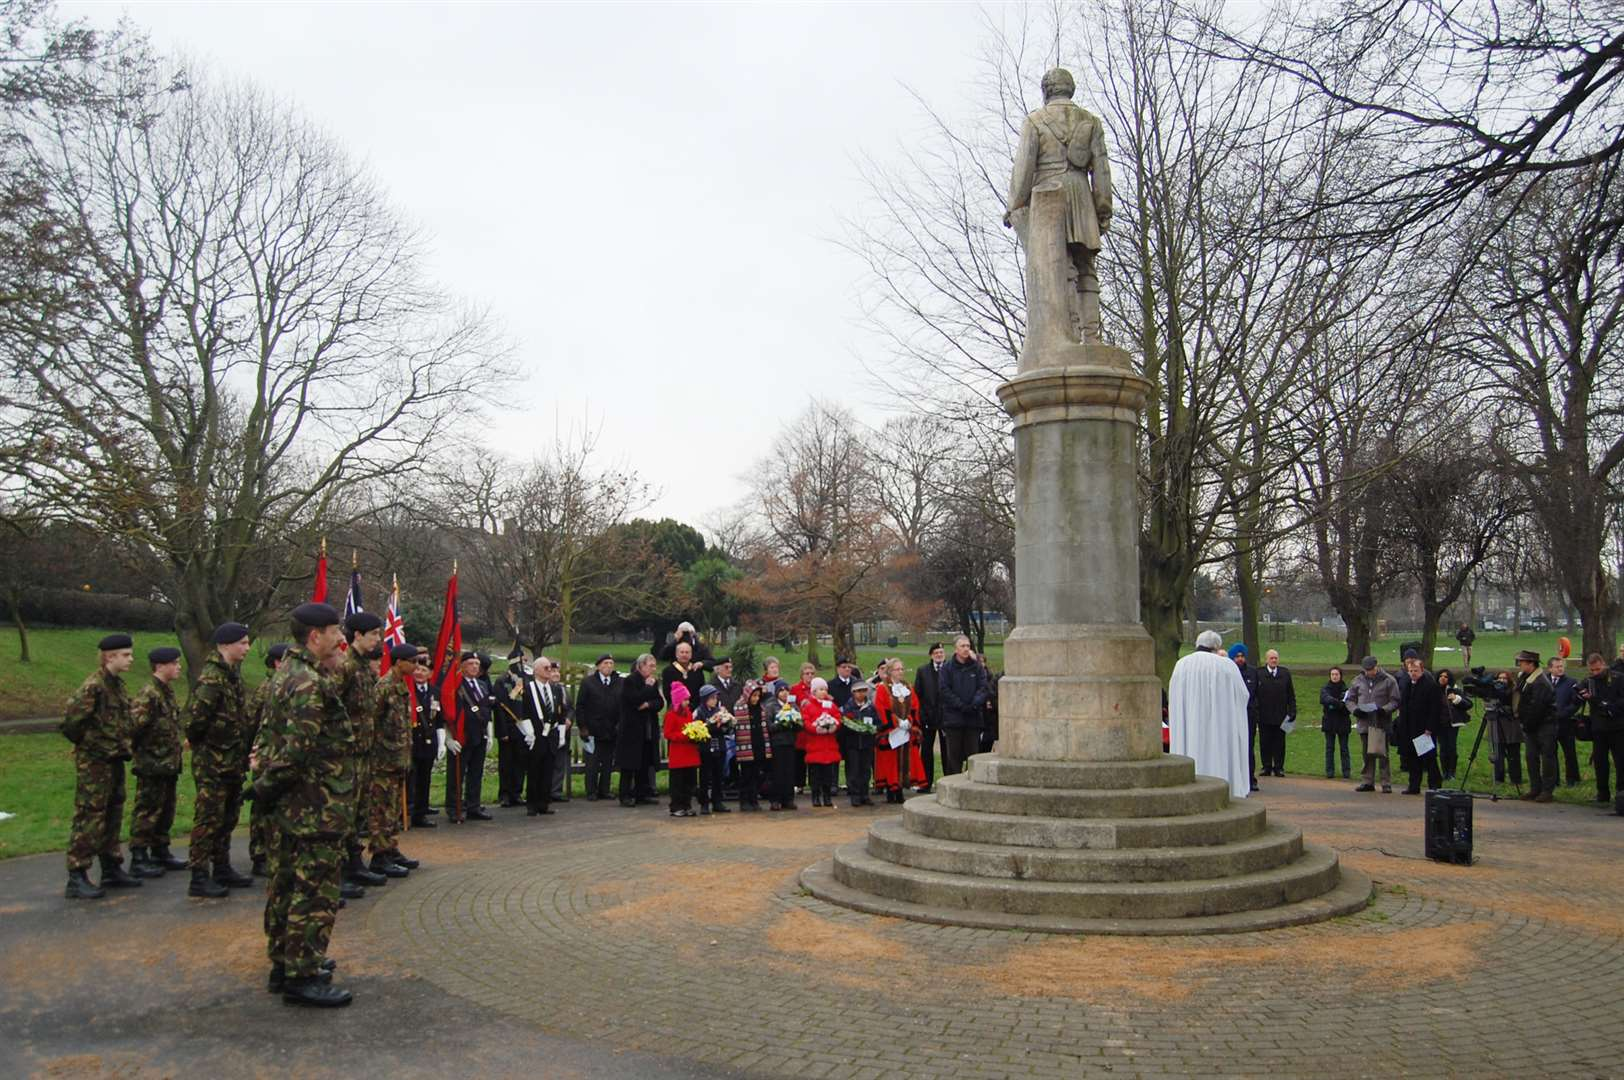 People gather at a service to commemorate the death of General Charles Gordon at the statue erected in his honour in the Fort Gardens, Gravesend